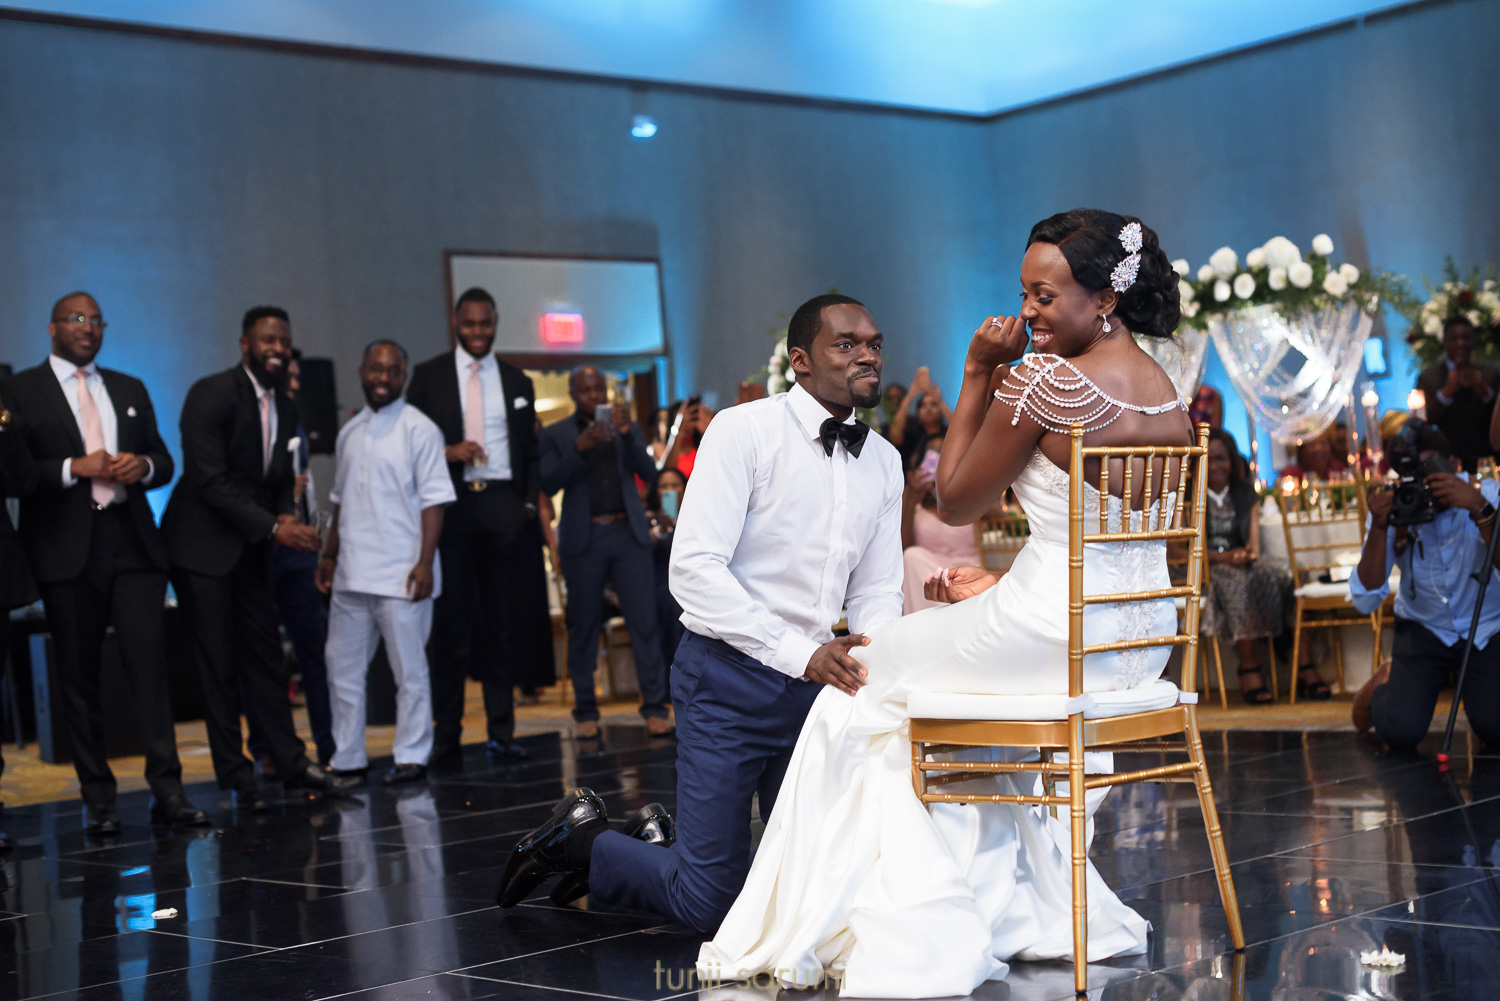 Nkiru and Gregg Wedding at Hilton BWI